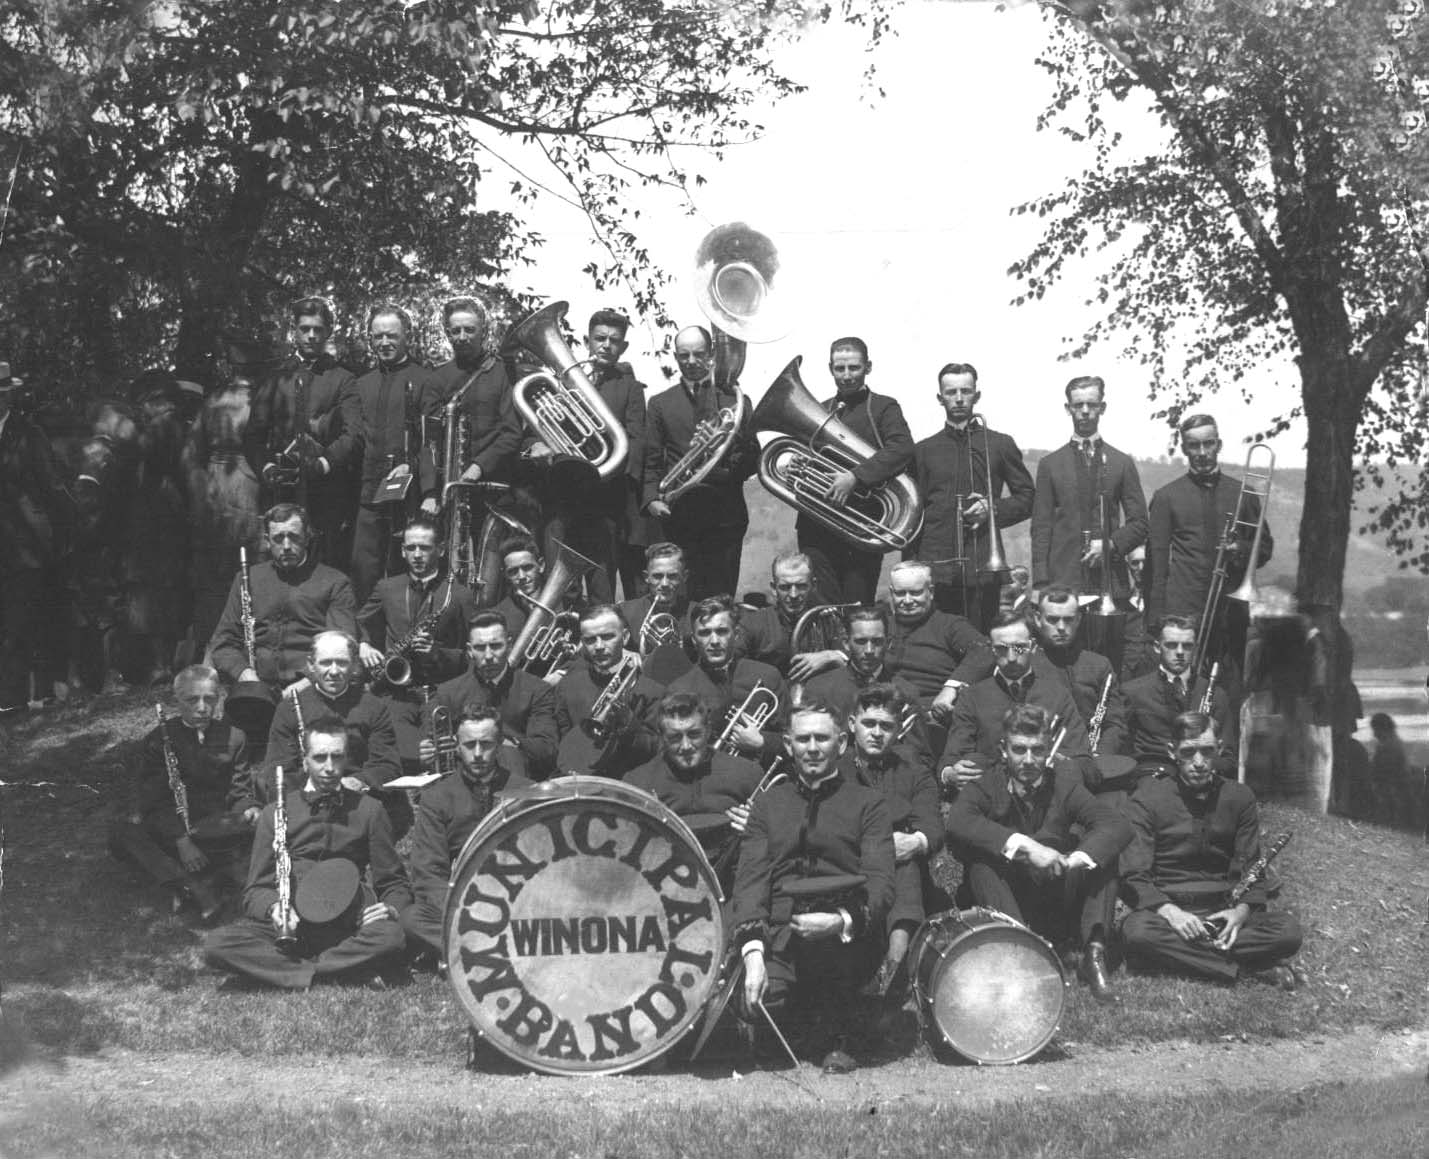 Municipal Band Vintage photo